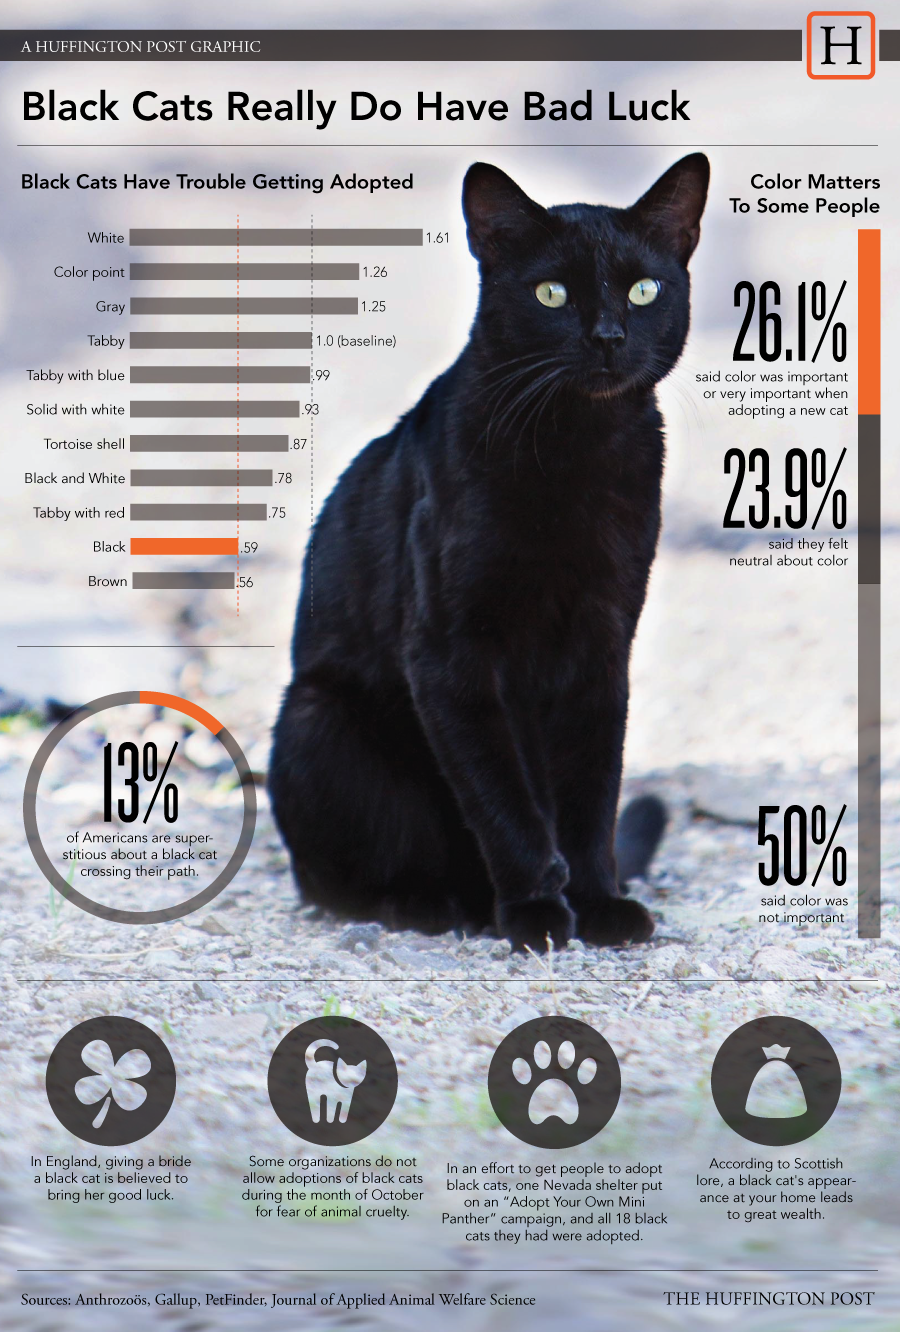 Black Cats Less Than Half As Likely To Be Adopted As Gray Cats